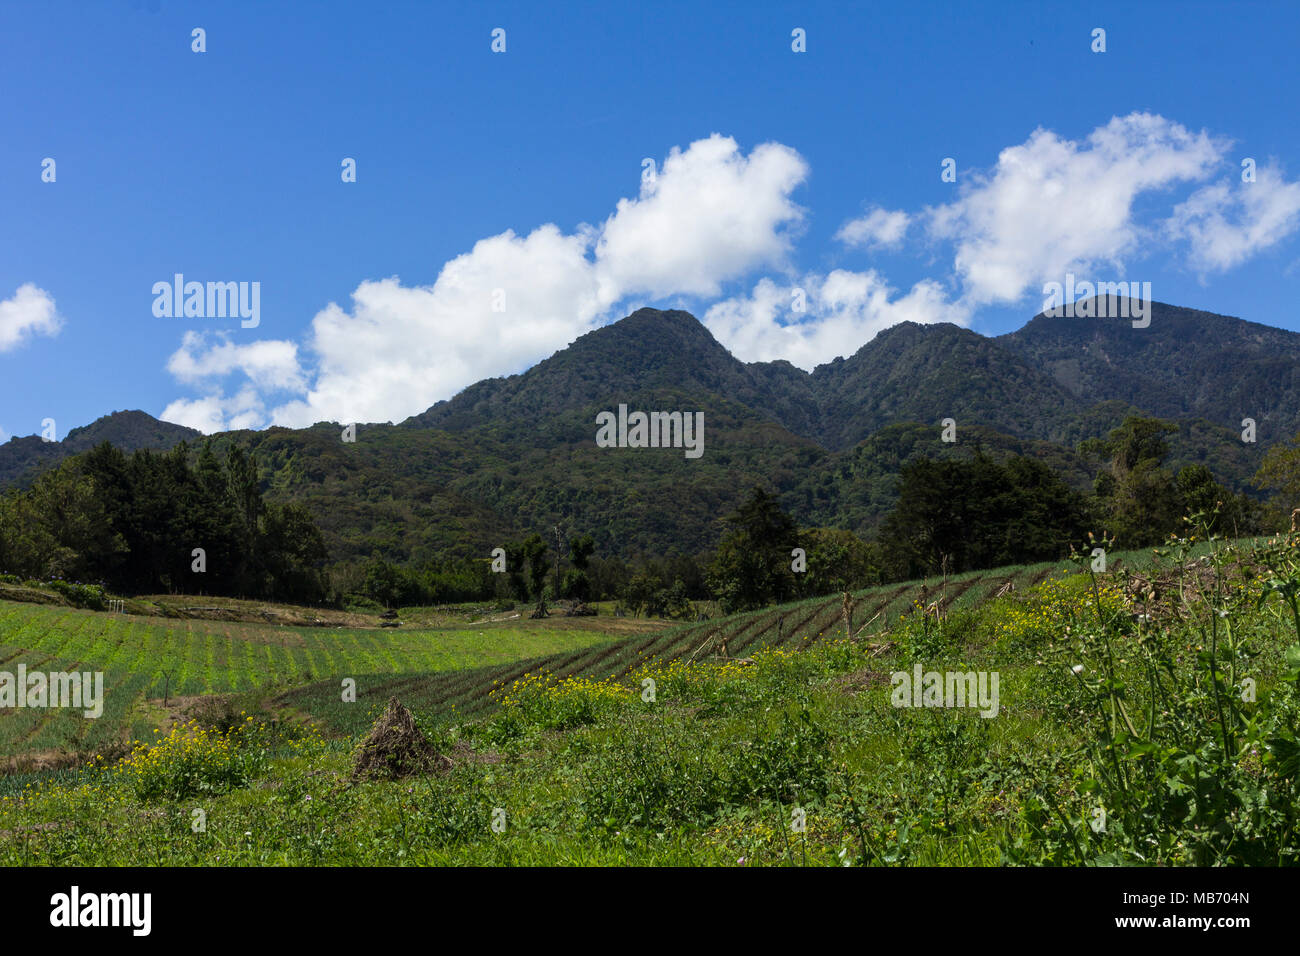 Panama's highest volcano, Volcan Baru, near Boquete, Panama on a clear day - Stock Image